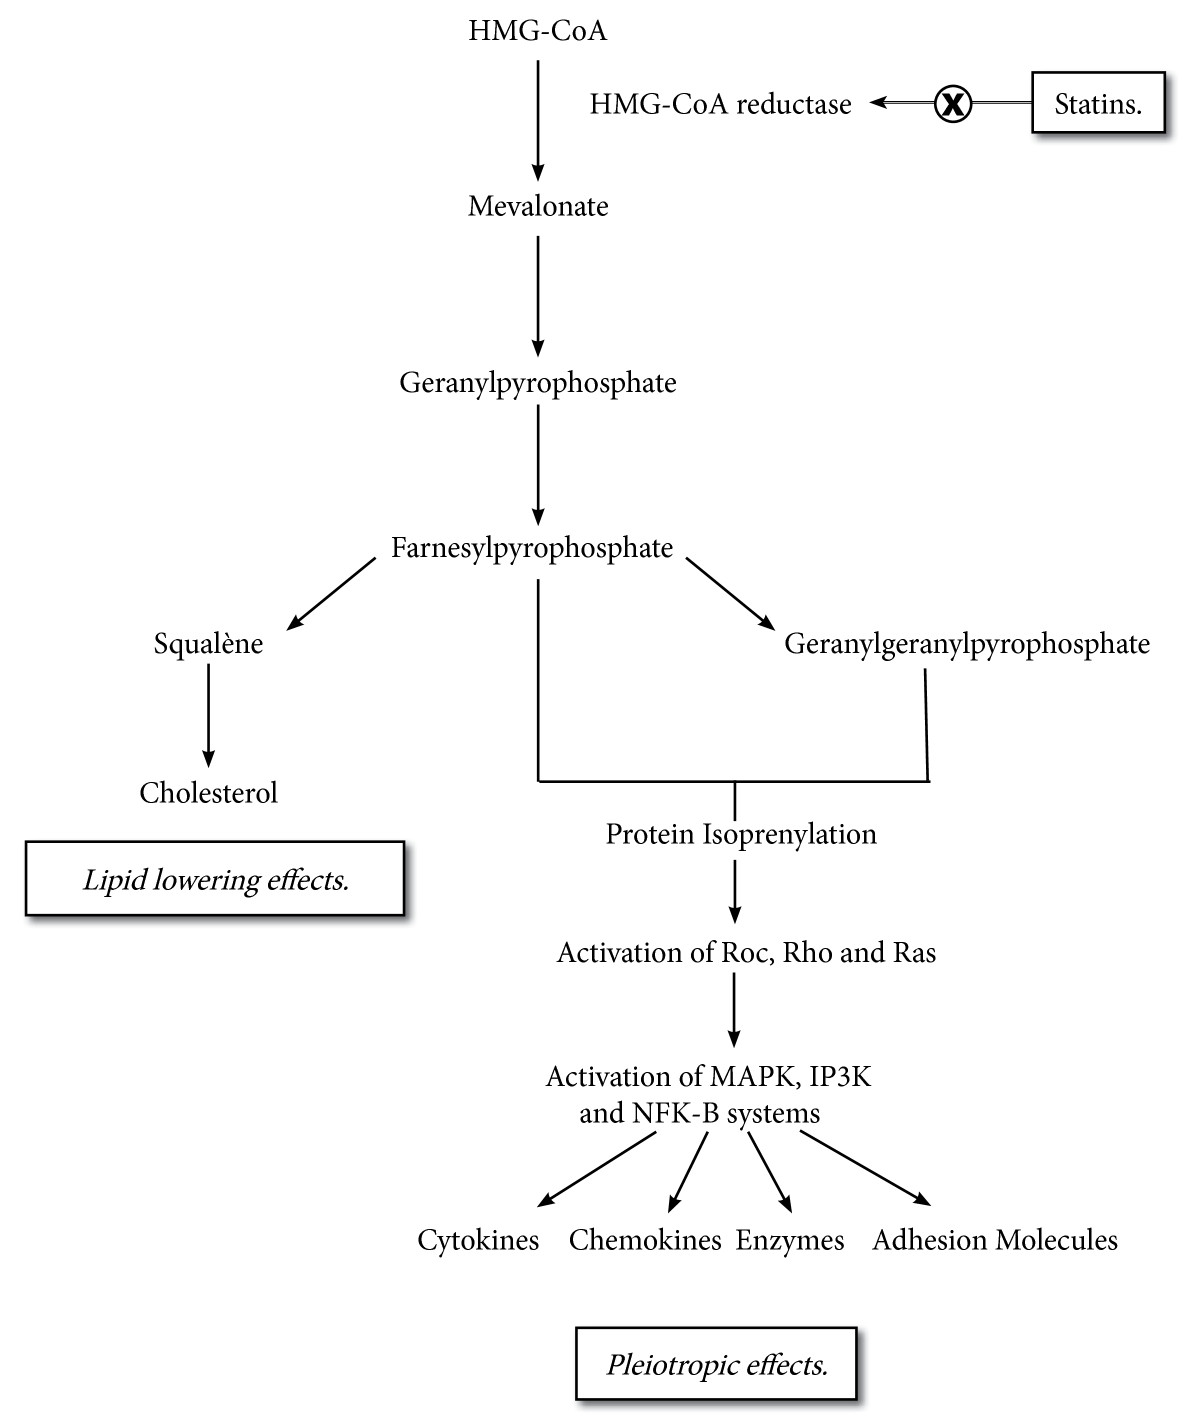 http://static-content.springer.com/image/art%3A10.1186%2F2110-5820-2-19/MediaObjects/13613_2012_Article_104_Fig1_HTML.jpg